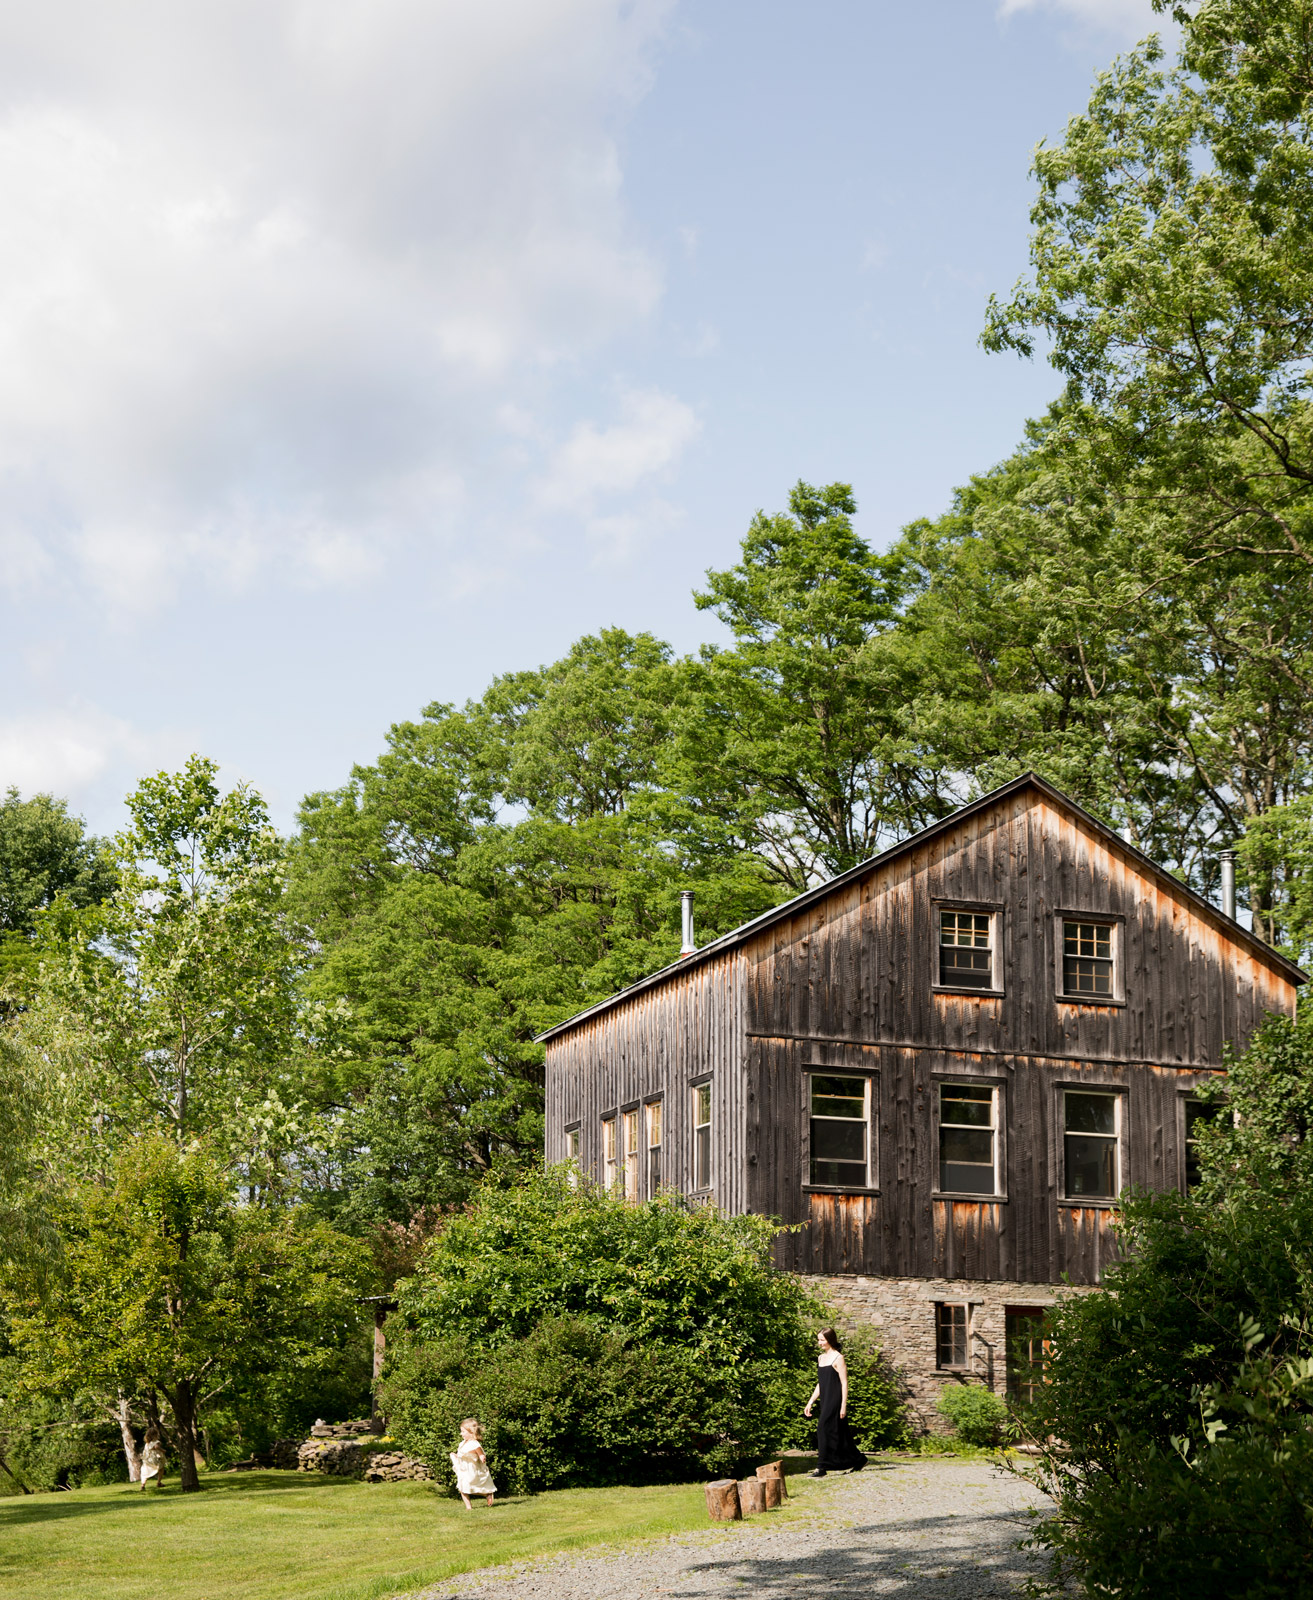 Rustic house exterior among trees